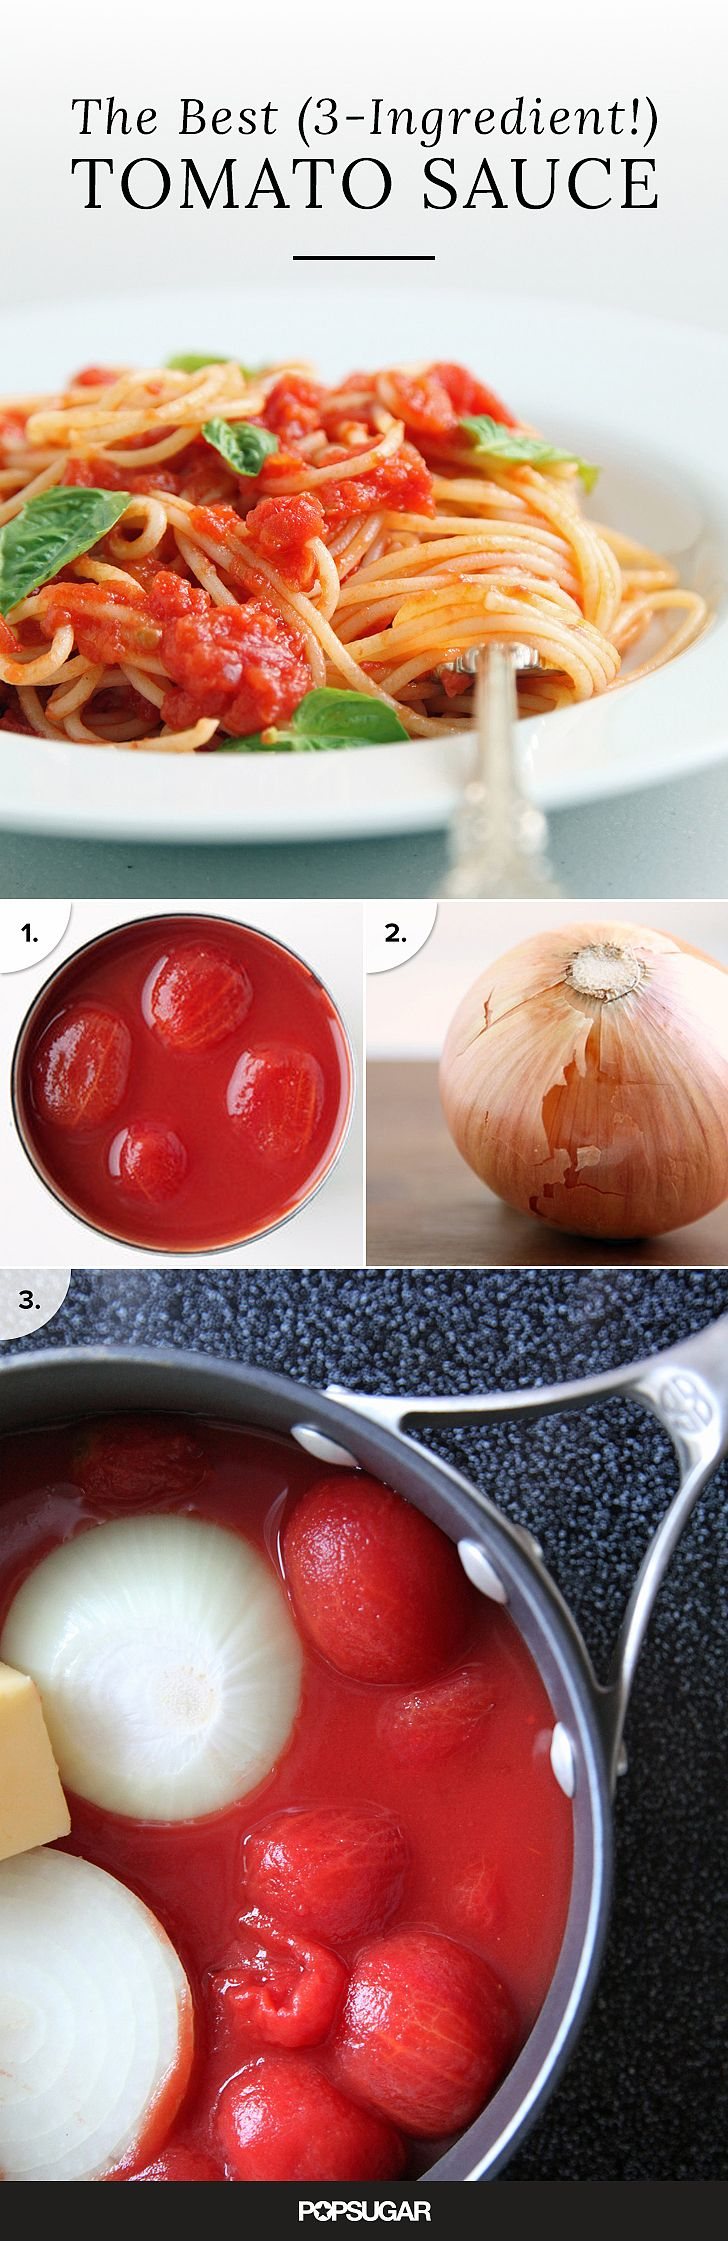 how to make gravy from stock without flour